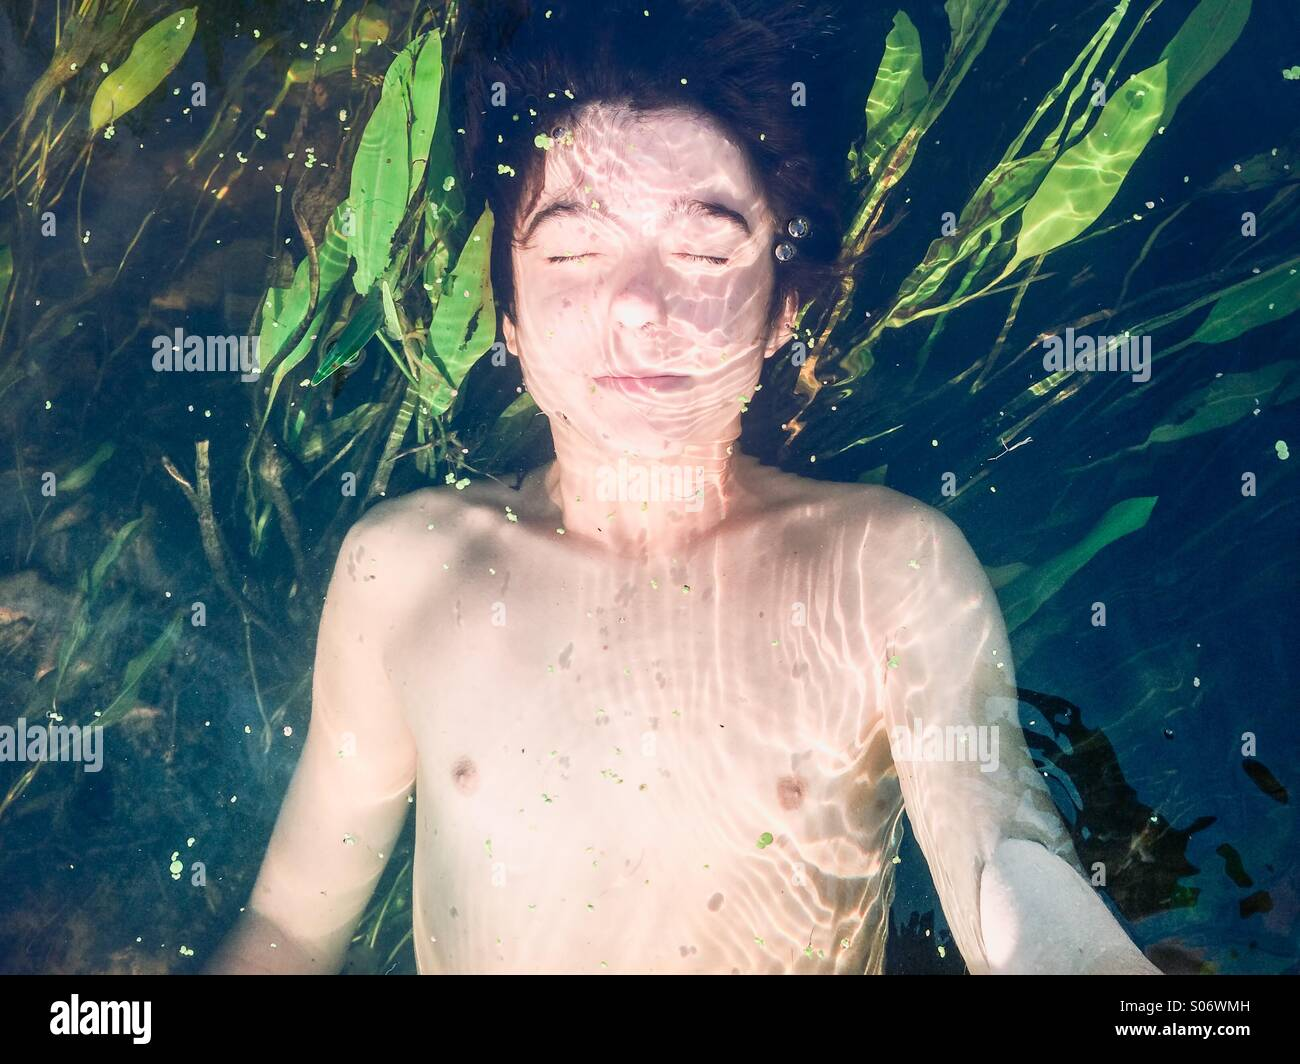 Boy submerged in a pure river with lush greenery - Stock Image